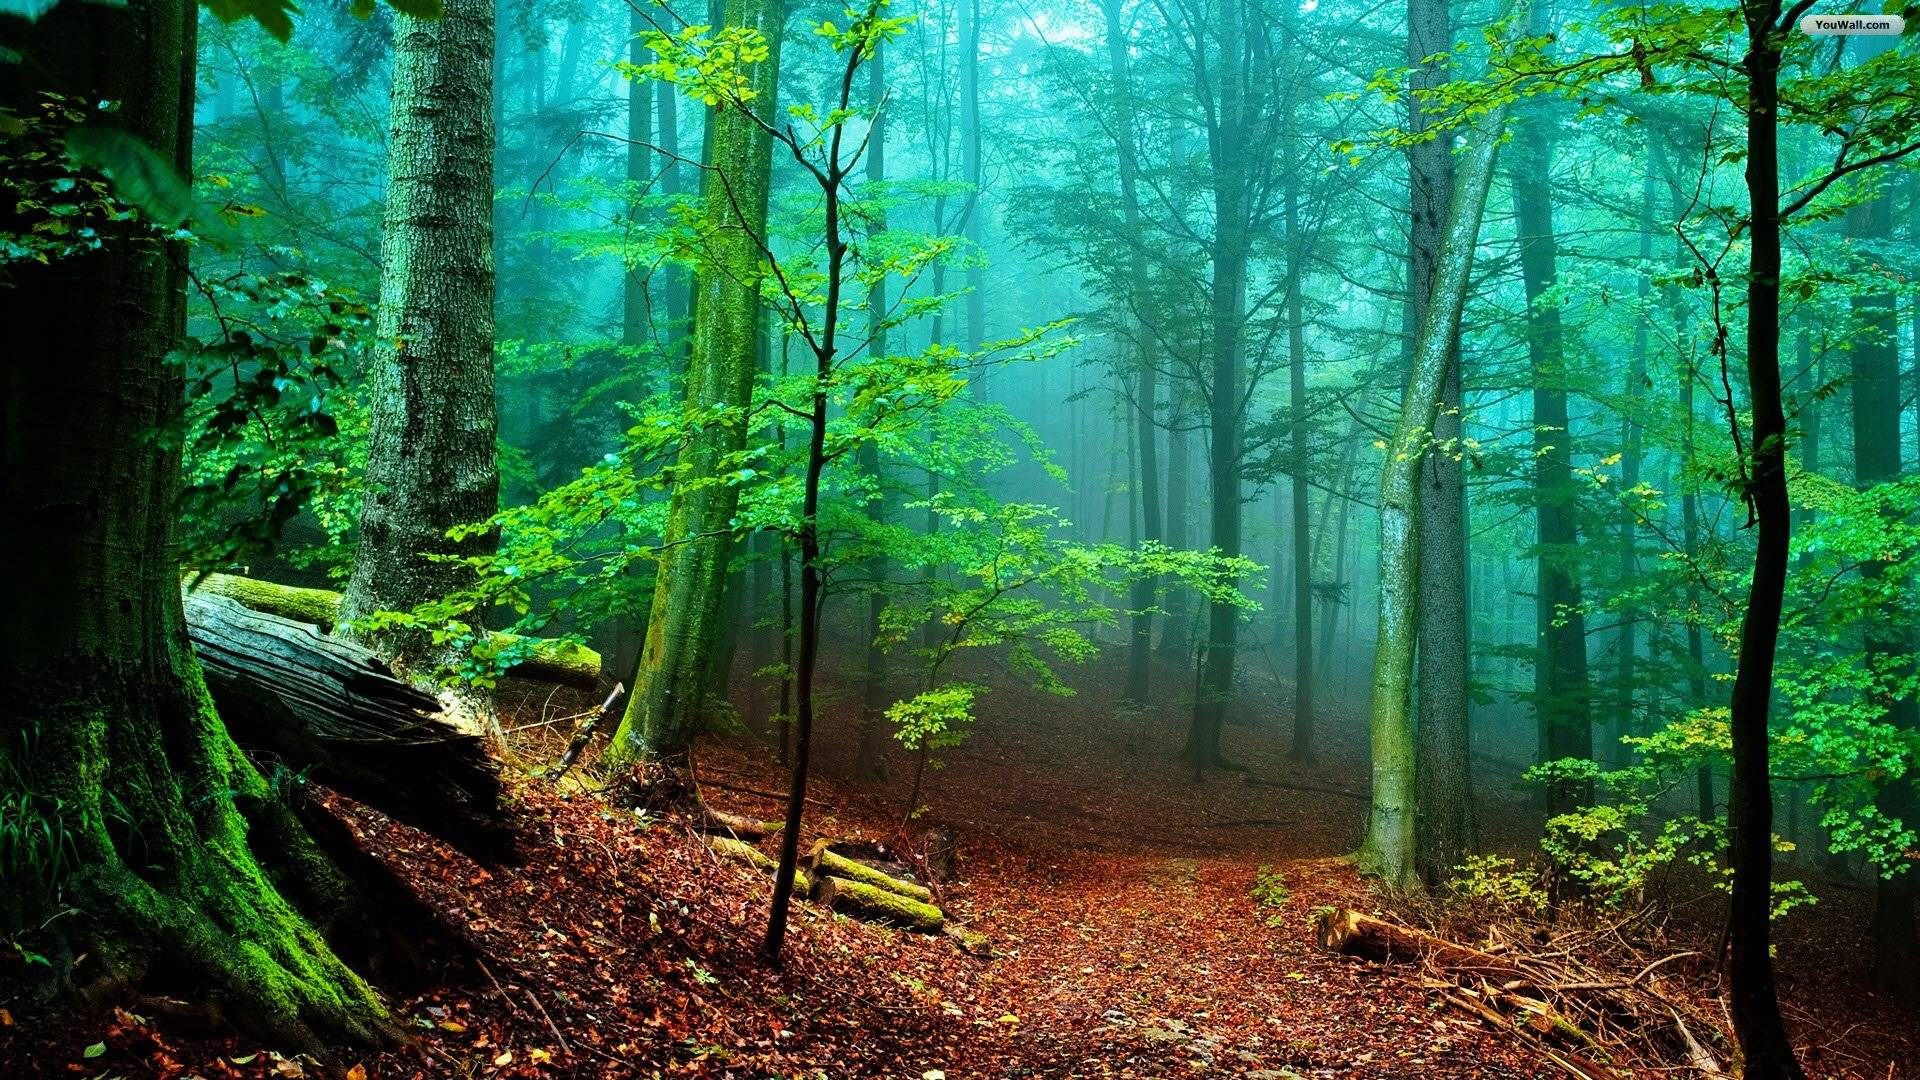 Hd Wallpapers Nature Forest Images 3 HD